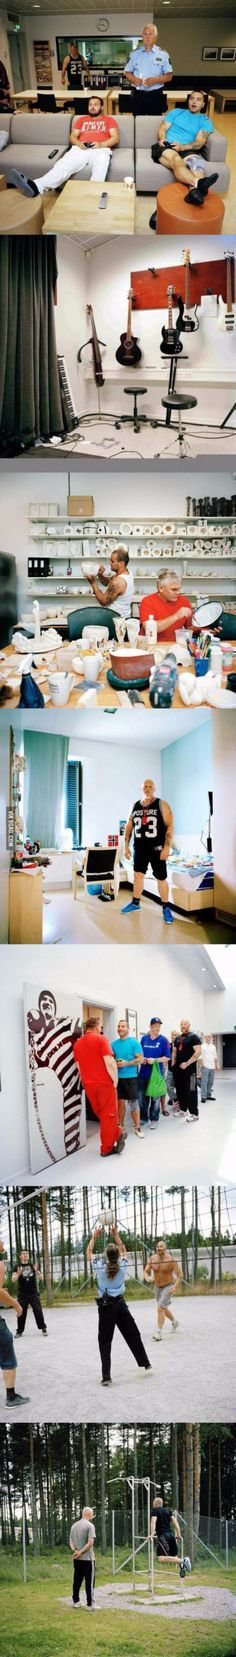 Prison in Norway Bizarre Pictures, Best Funny Pictures, Cool Pictures, Faith In Humanity Restored, 9gag Funny, Wtf Fun Facts, Prison, Norway, Cool Stuff